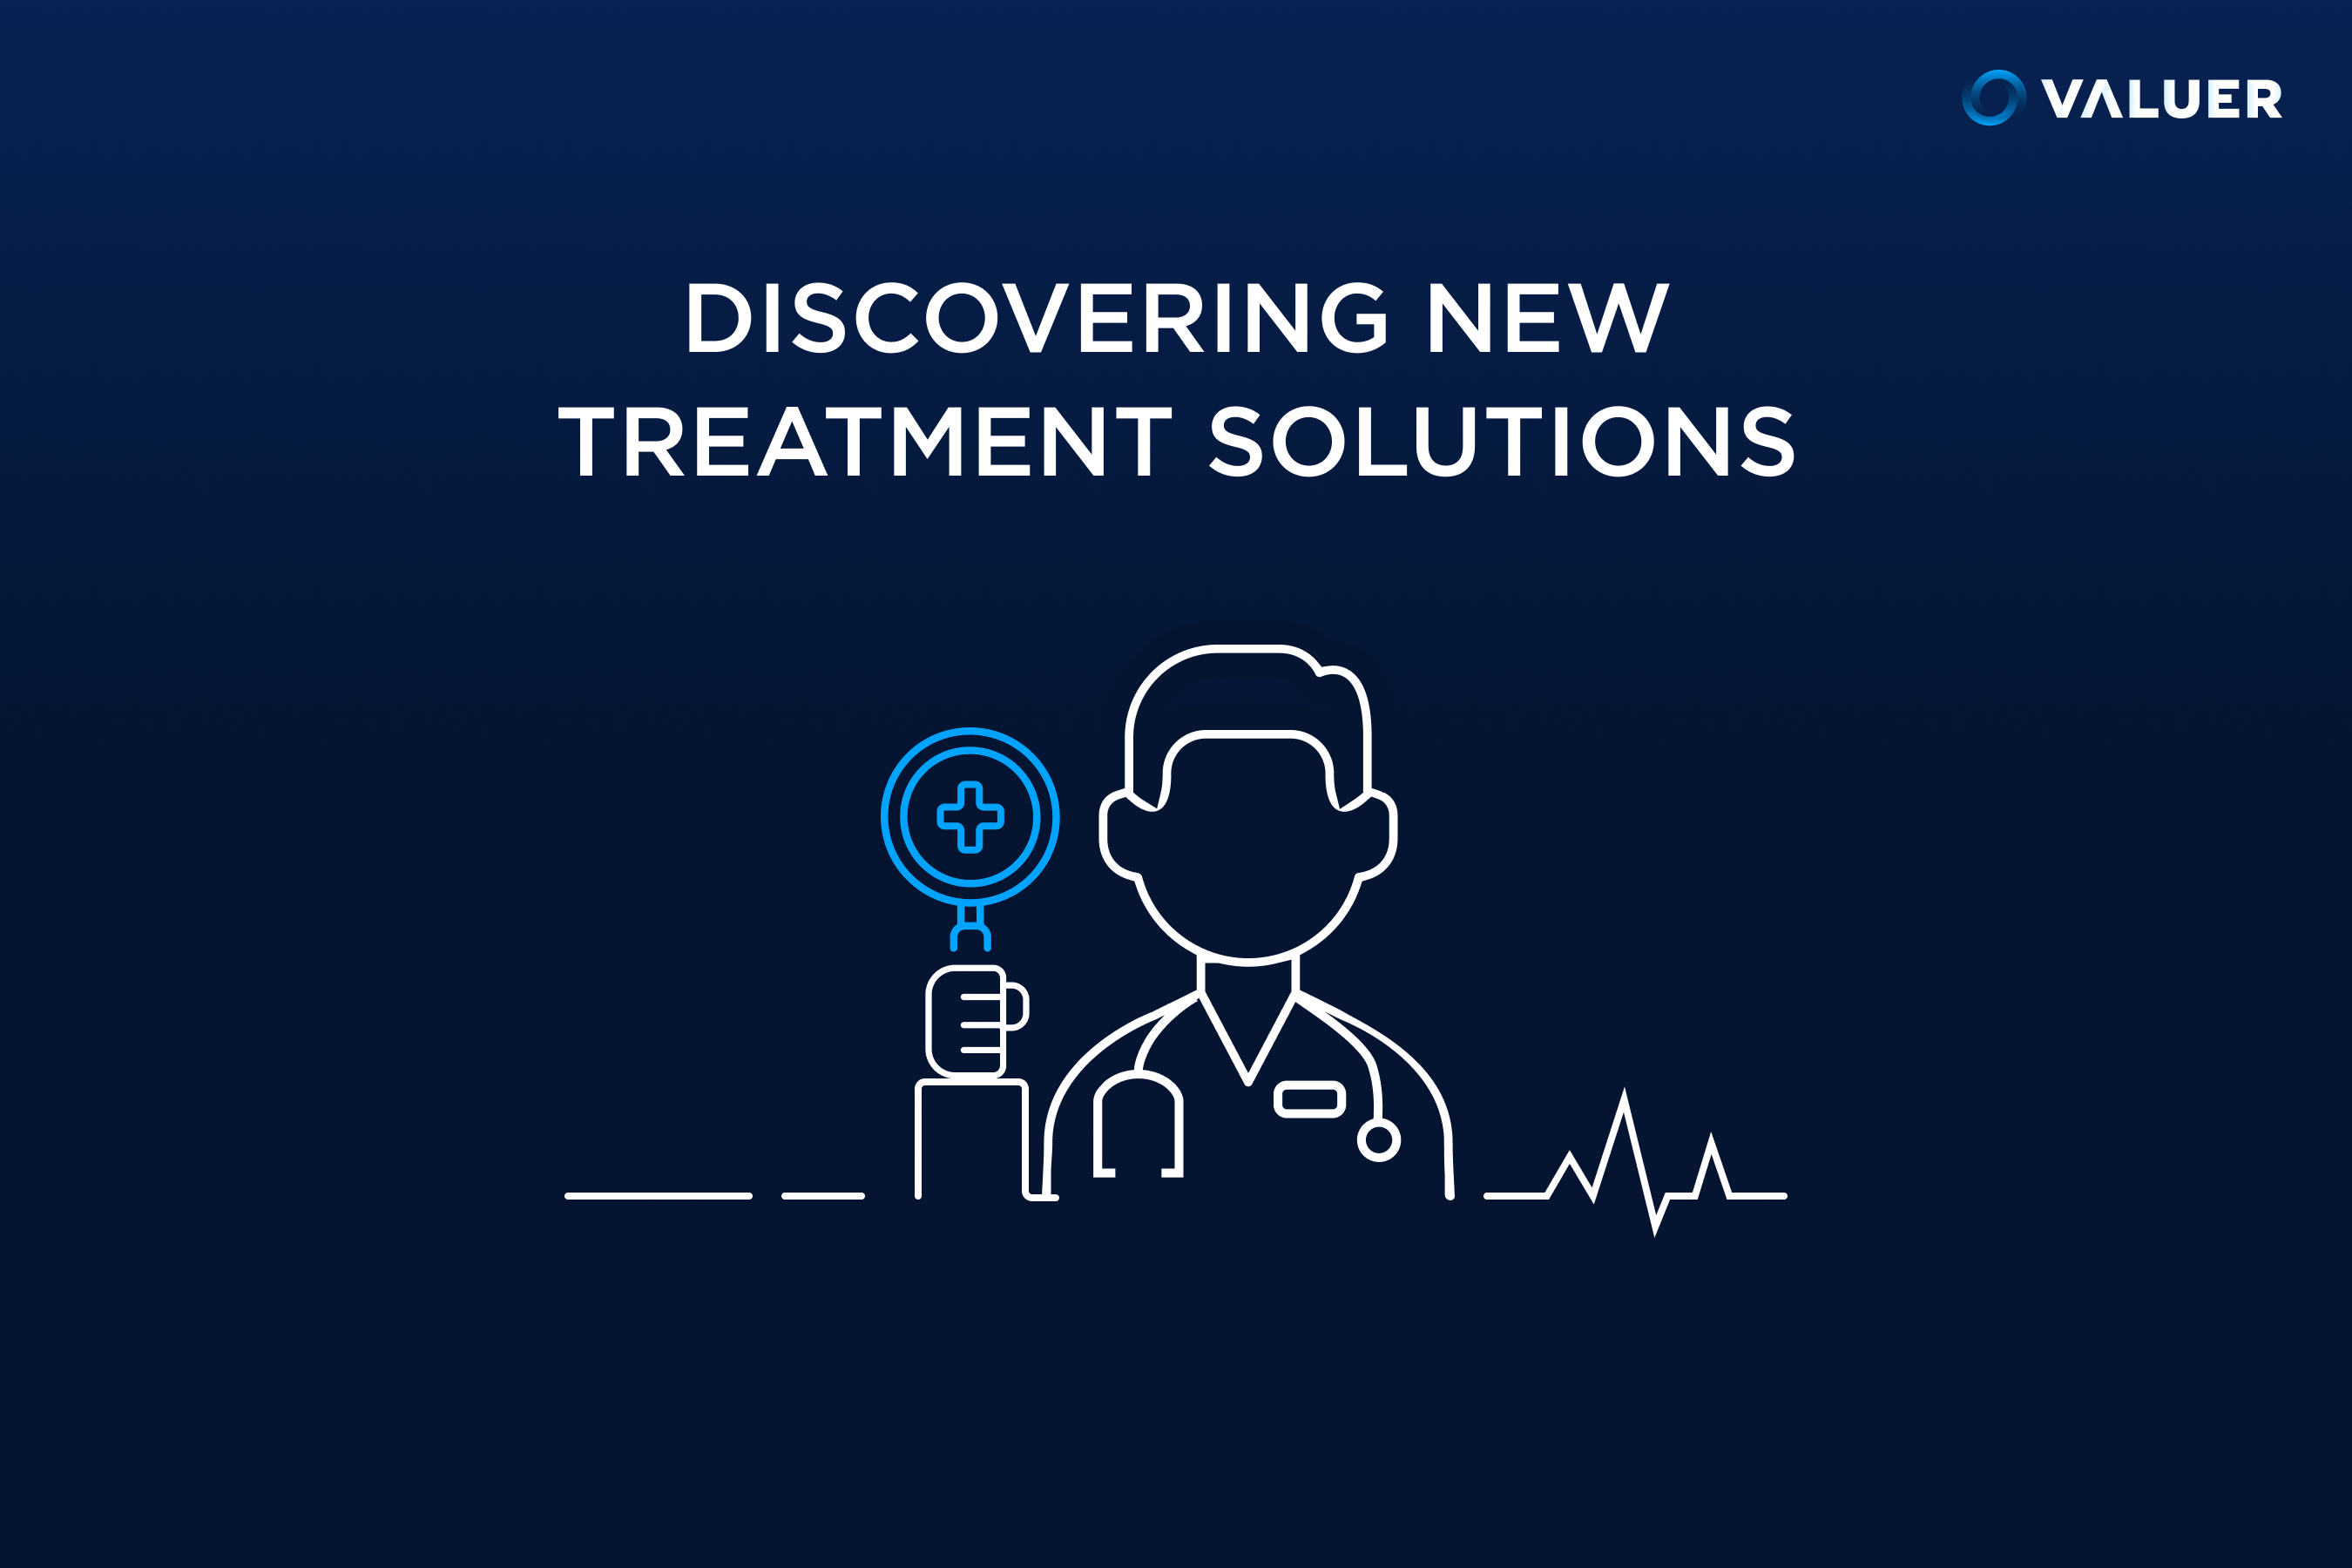 discovering new treatment solutions with image of doctor